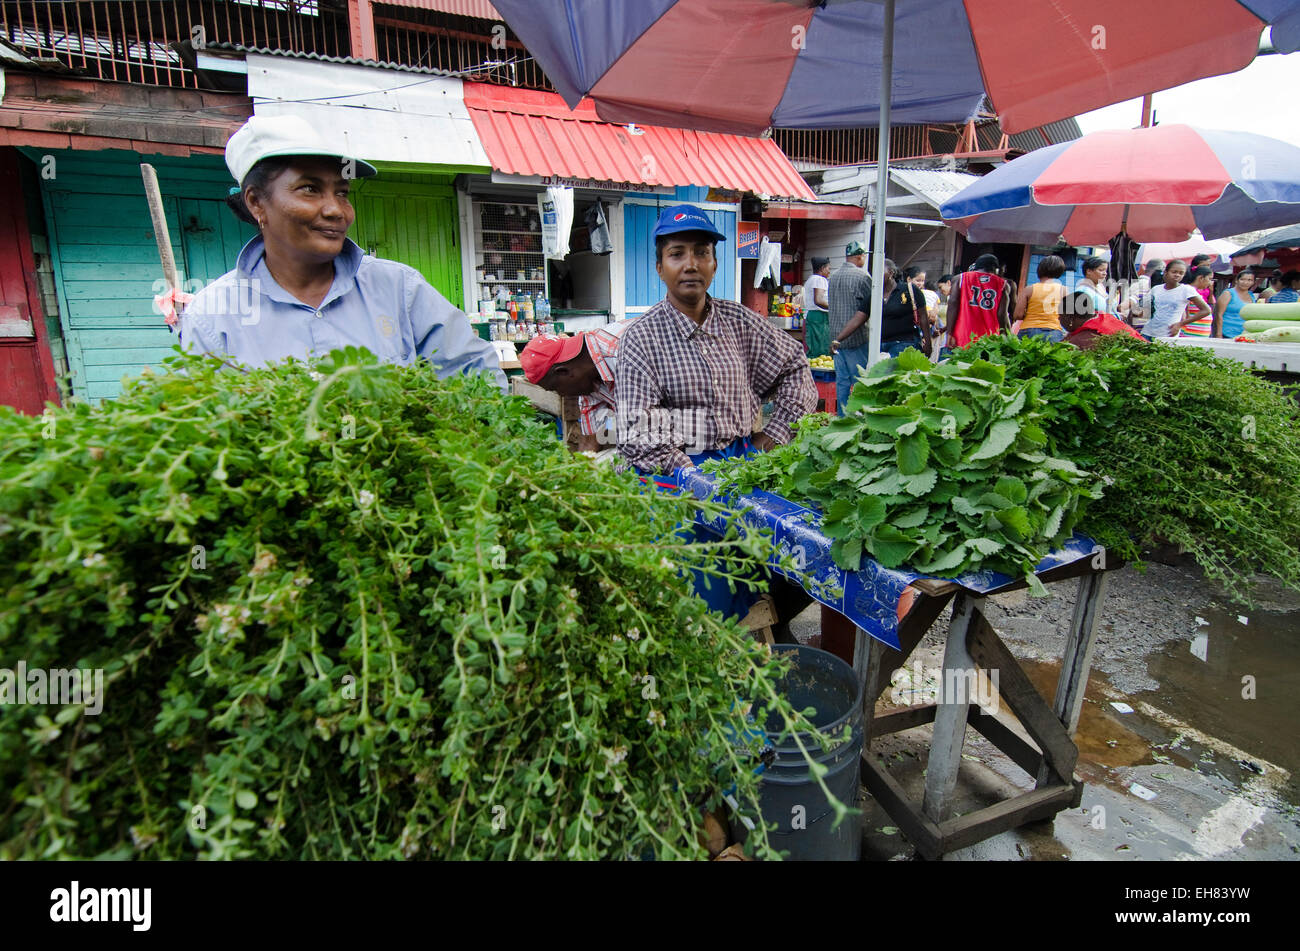 Herb sellers in Stabroek Market, Georgetown, Guyana, South America - Stock Image